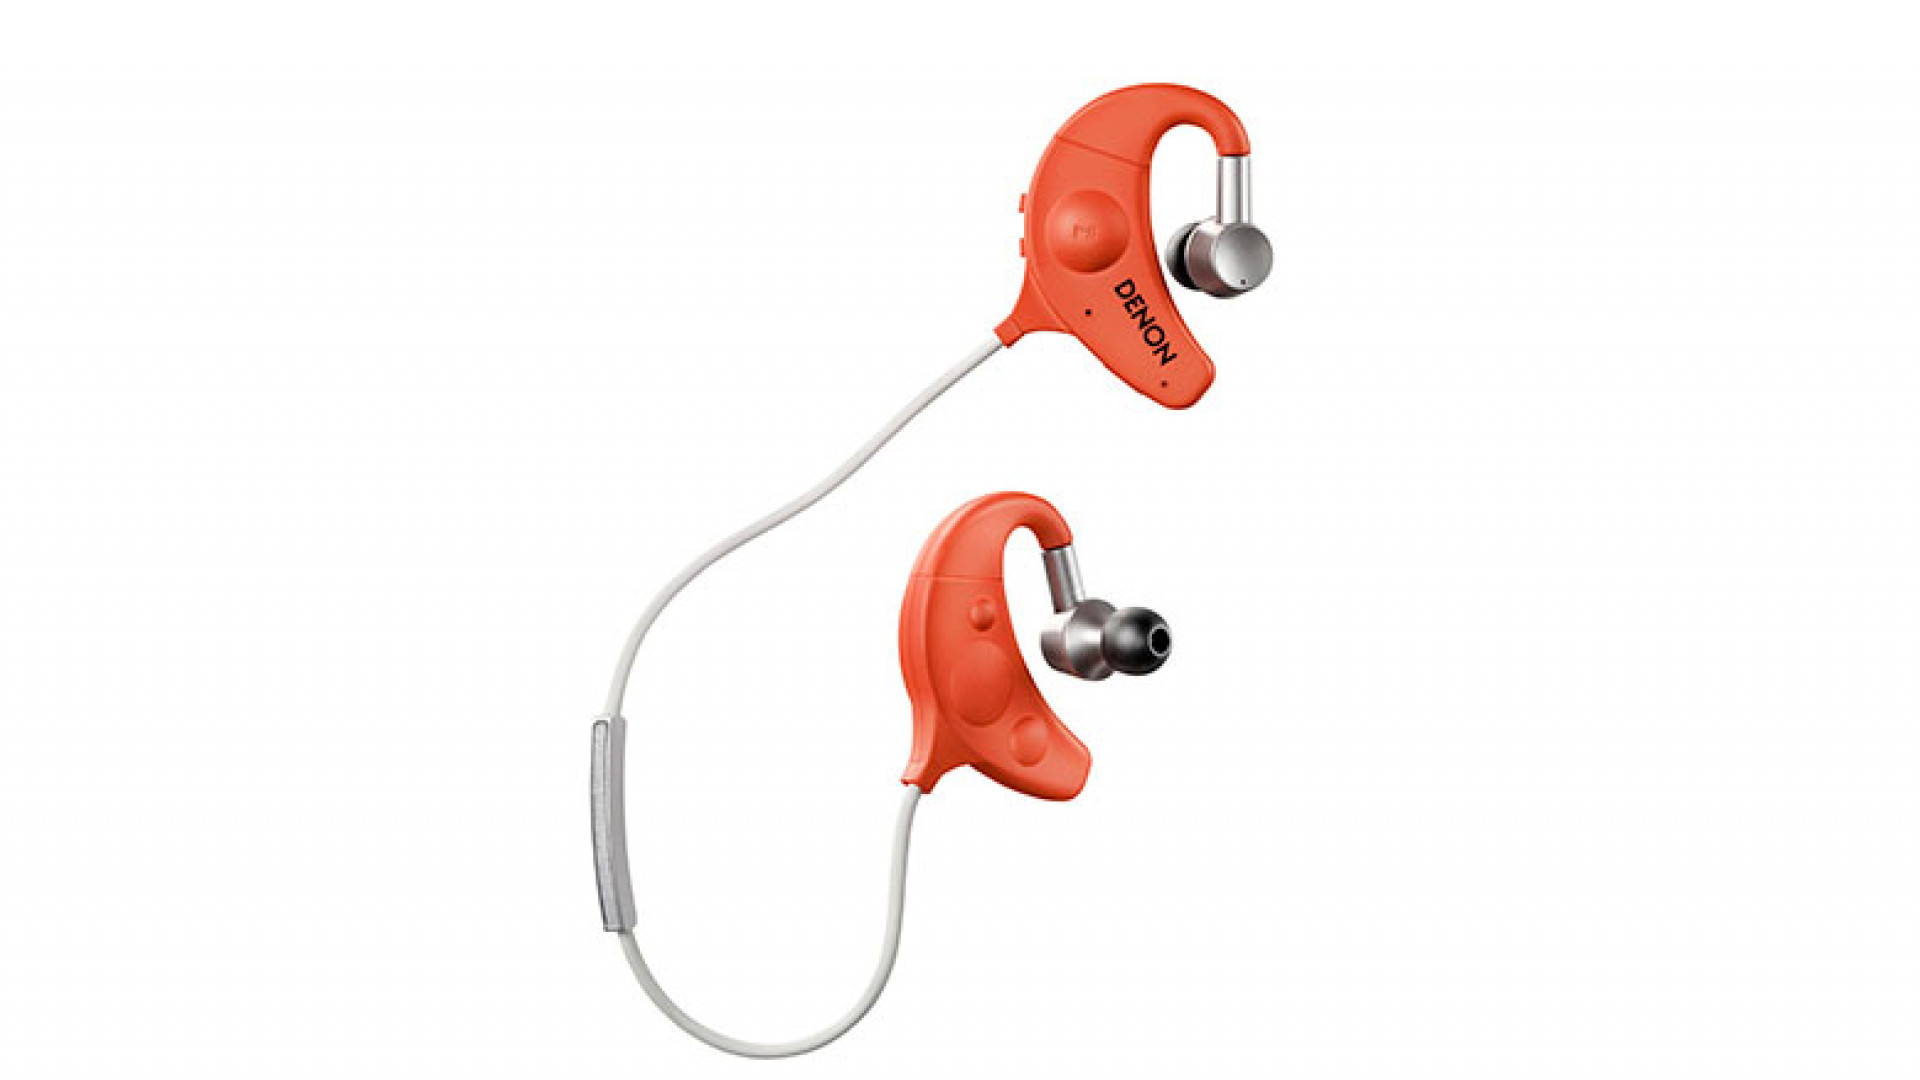 130203-Denon_AH-W150PK-product_standing-orange